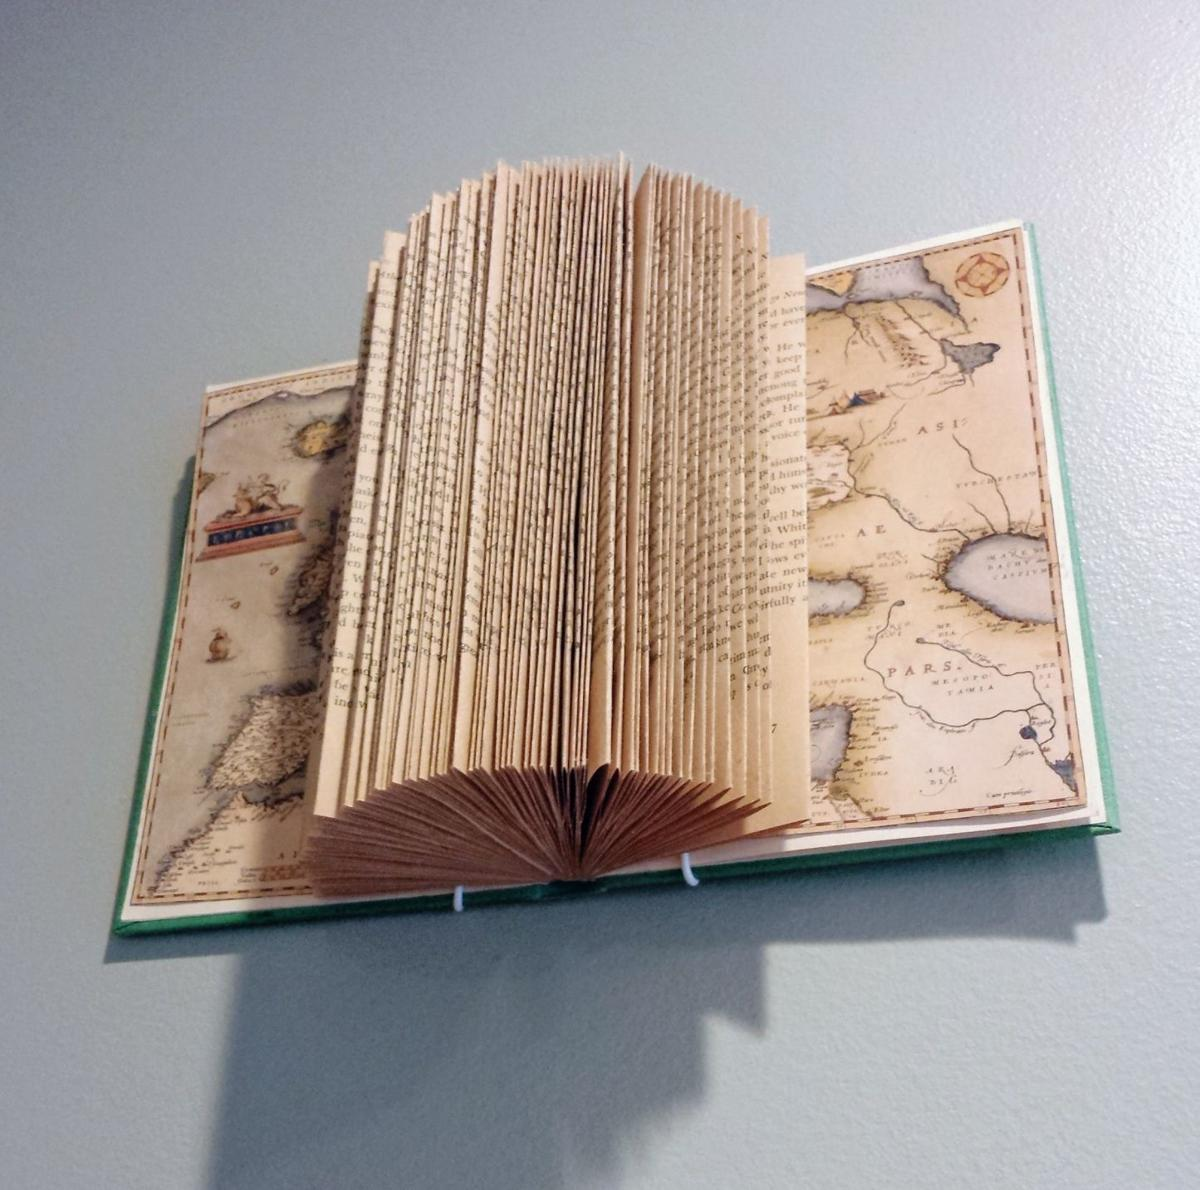 A new use for an old book? Fold it into a work of art